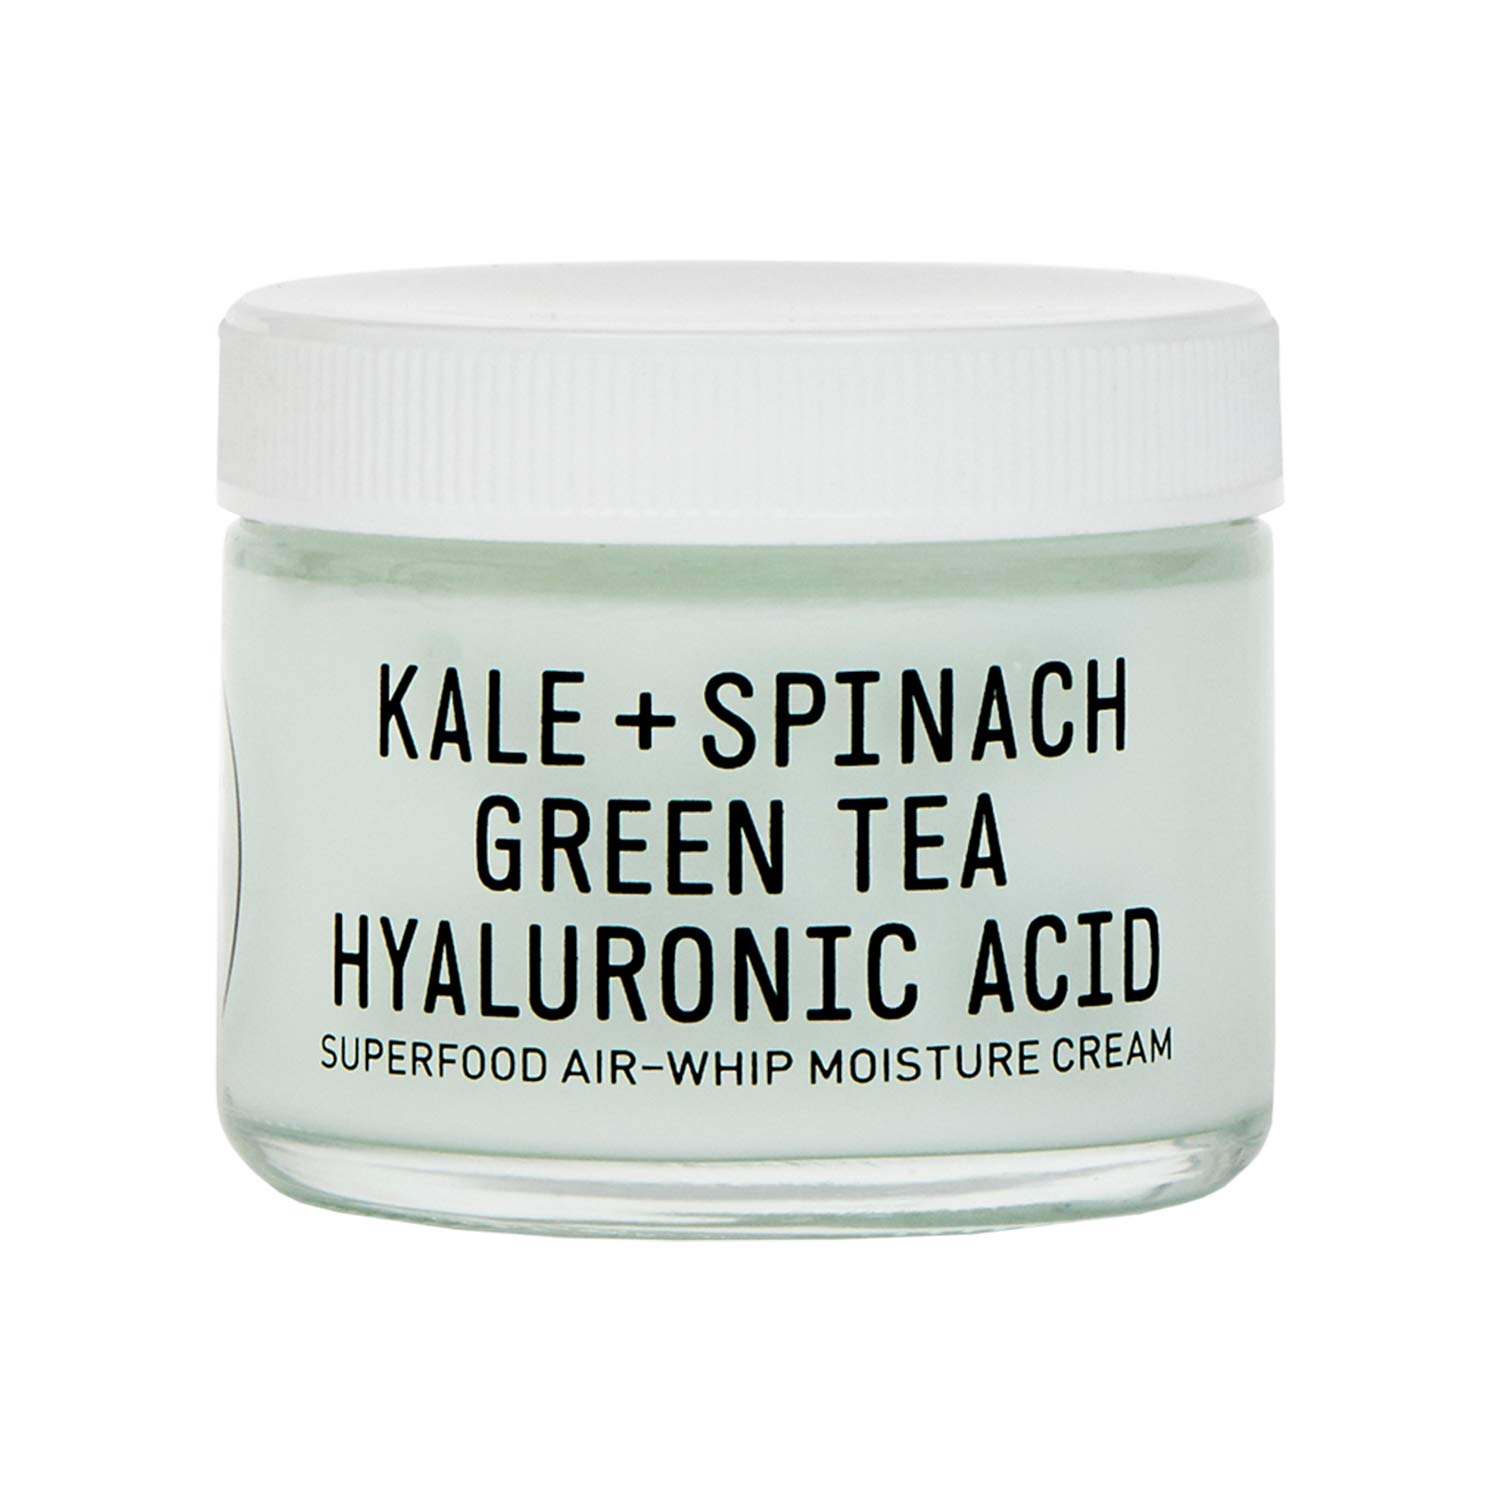 Youth to the People Superfood Air-Whip Moisturizer with Hyaluronic Acid